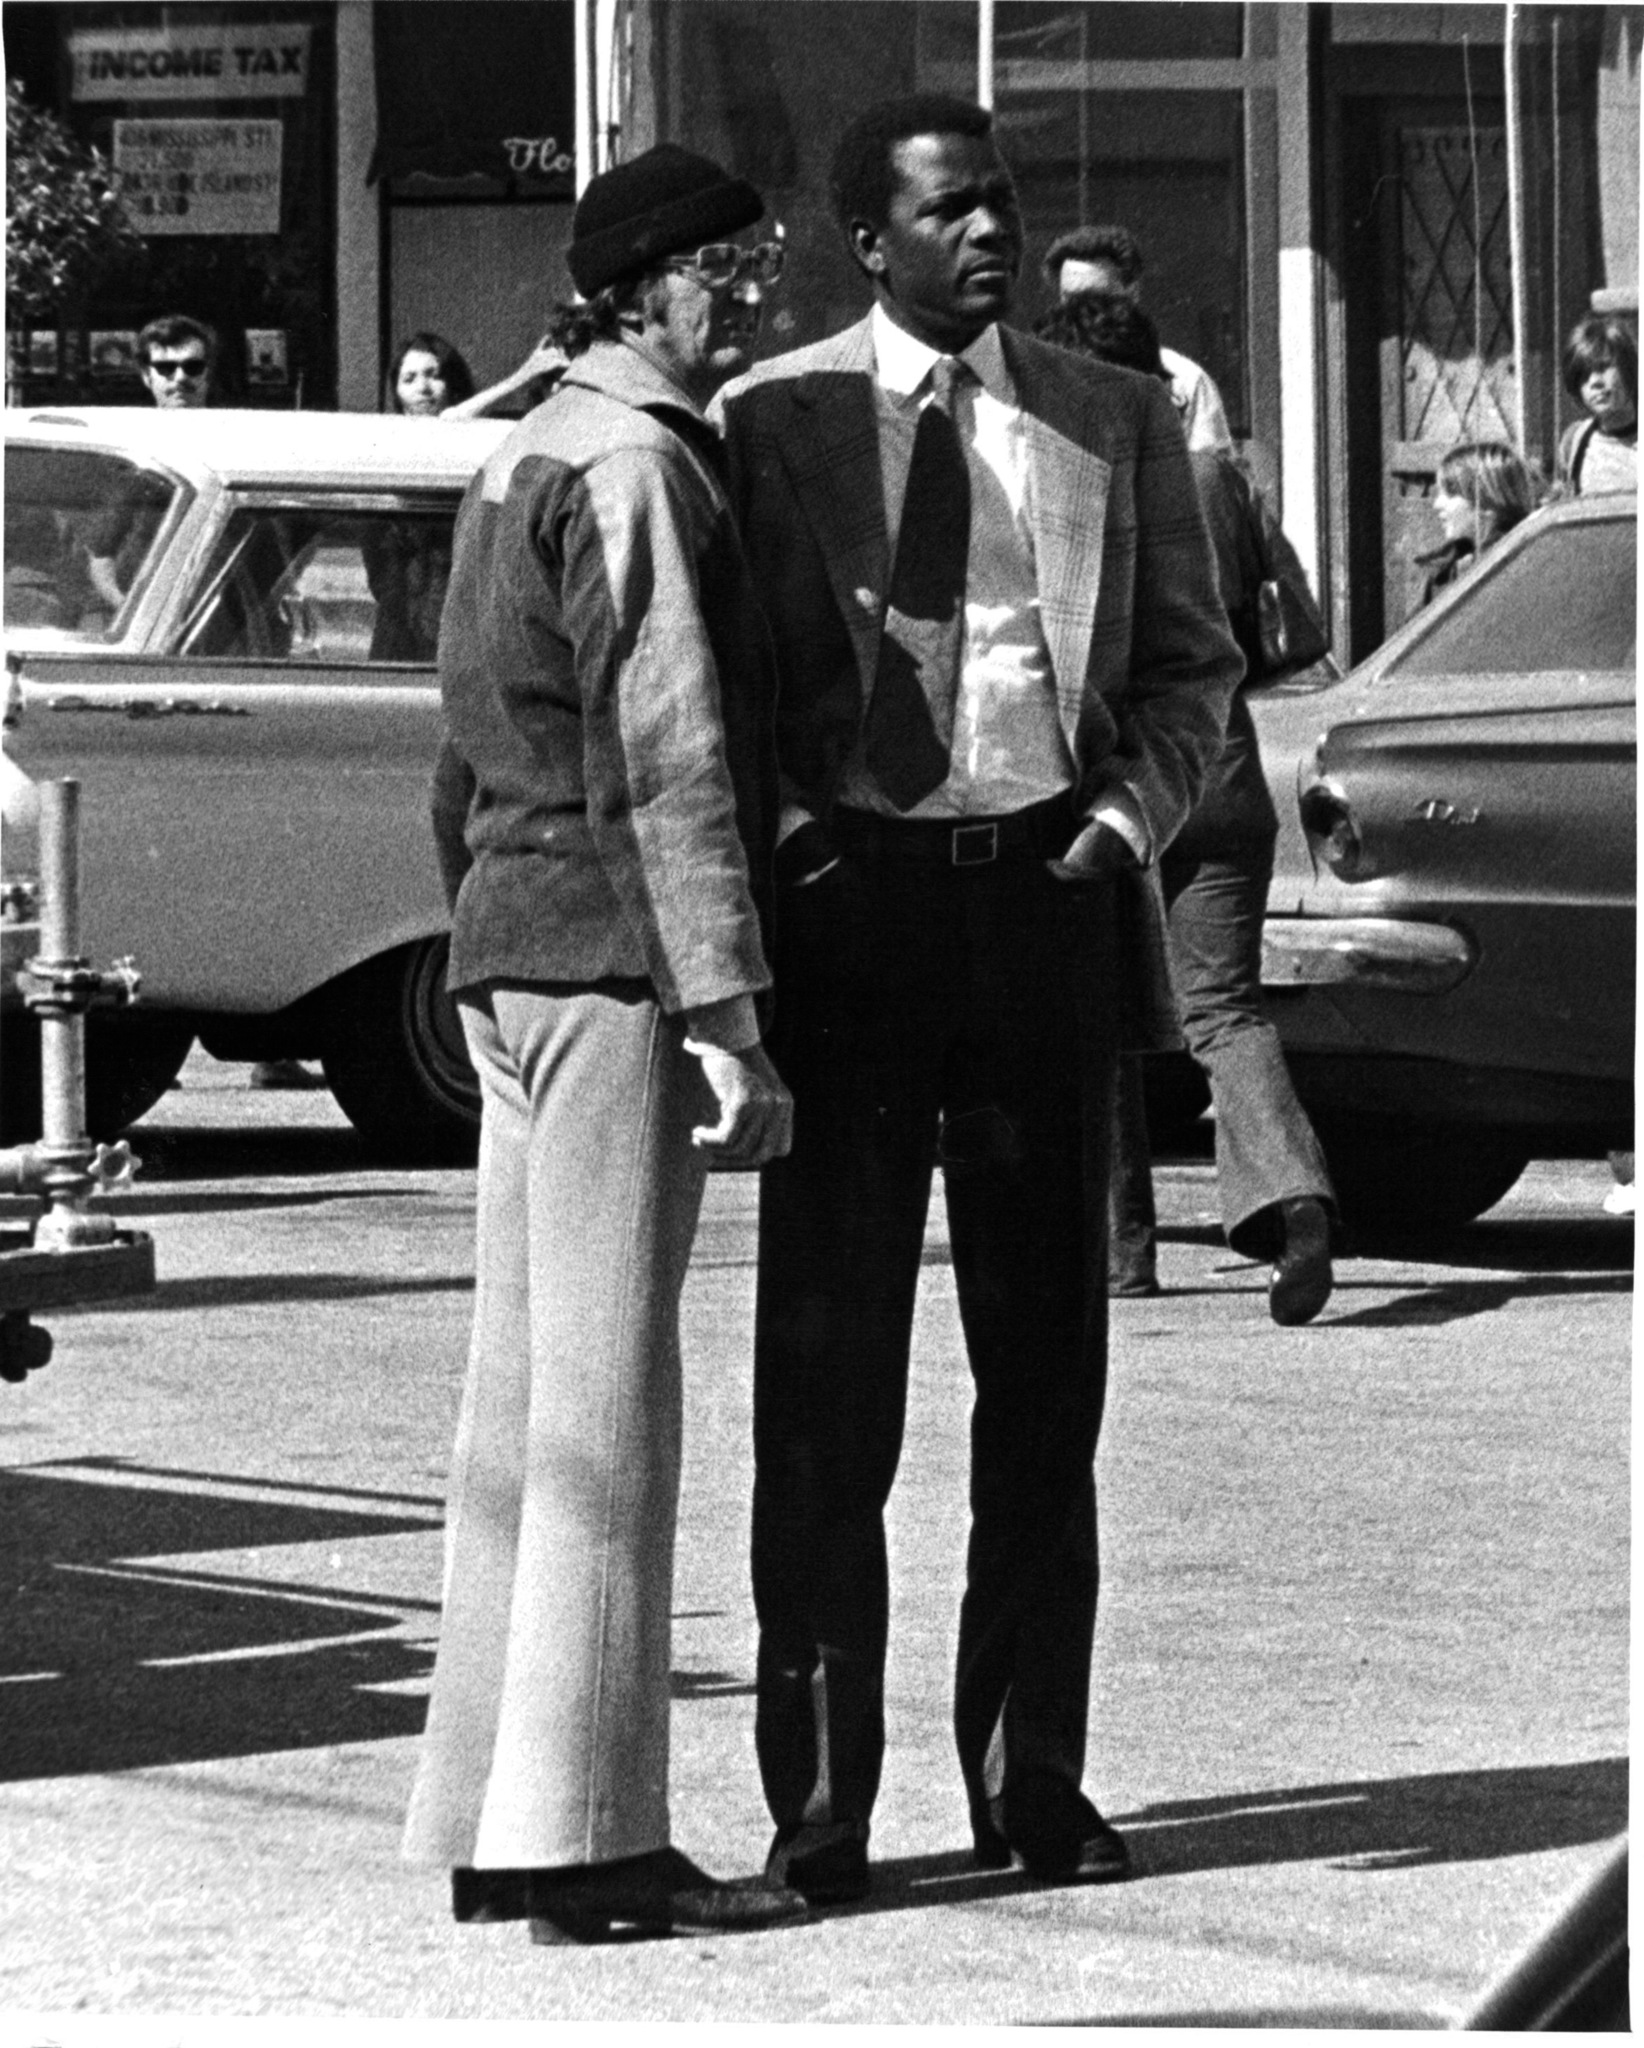 Sidney Poitier and Don Medford in The Organization (1971)